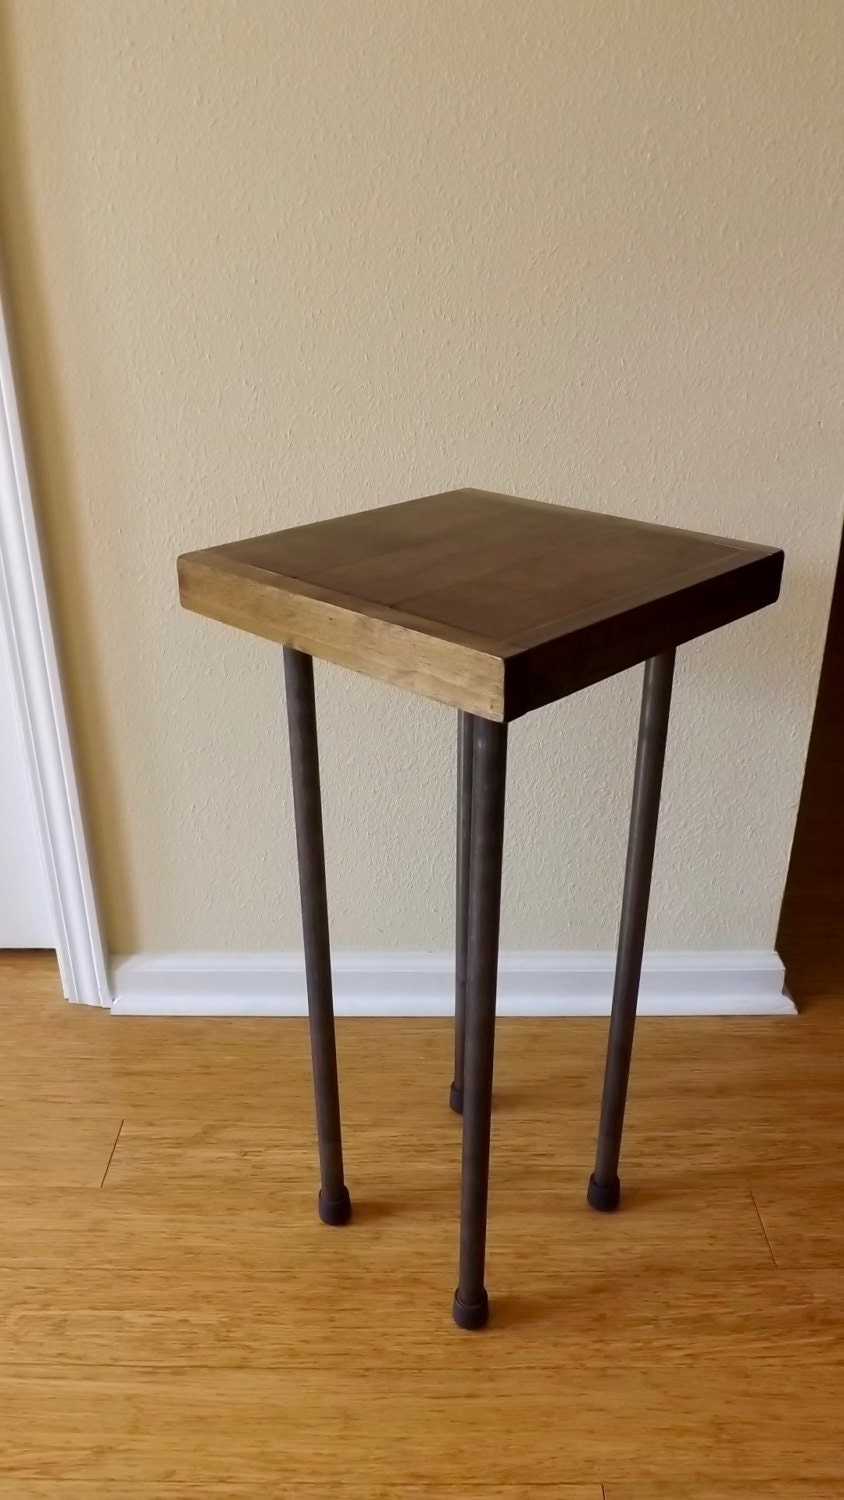 small wood metal end table. Black Bedroom Furniture Sets. Home Design Ideas